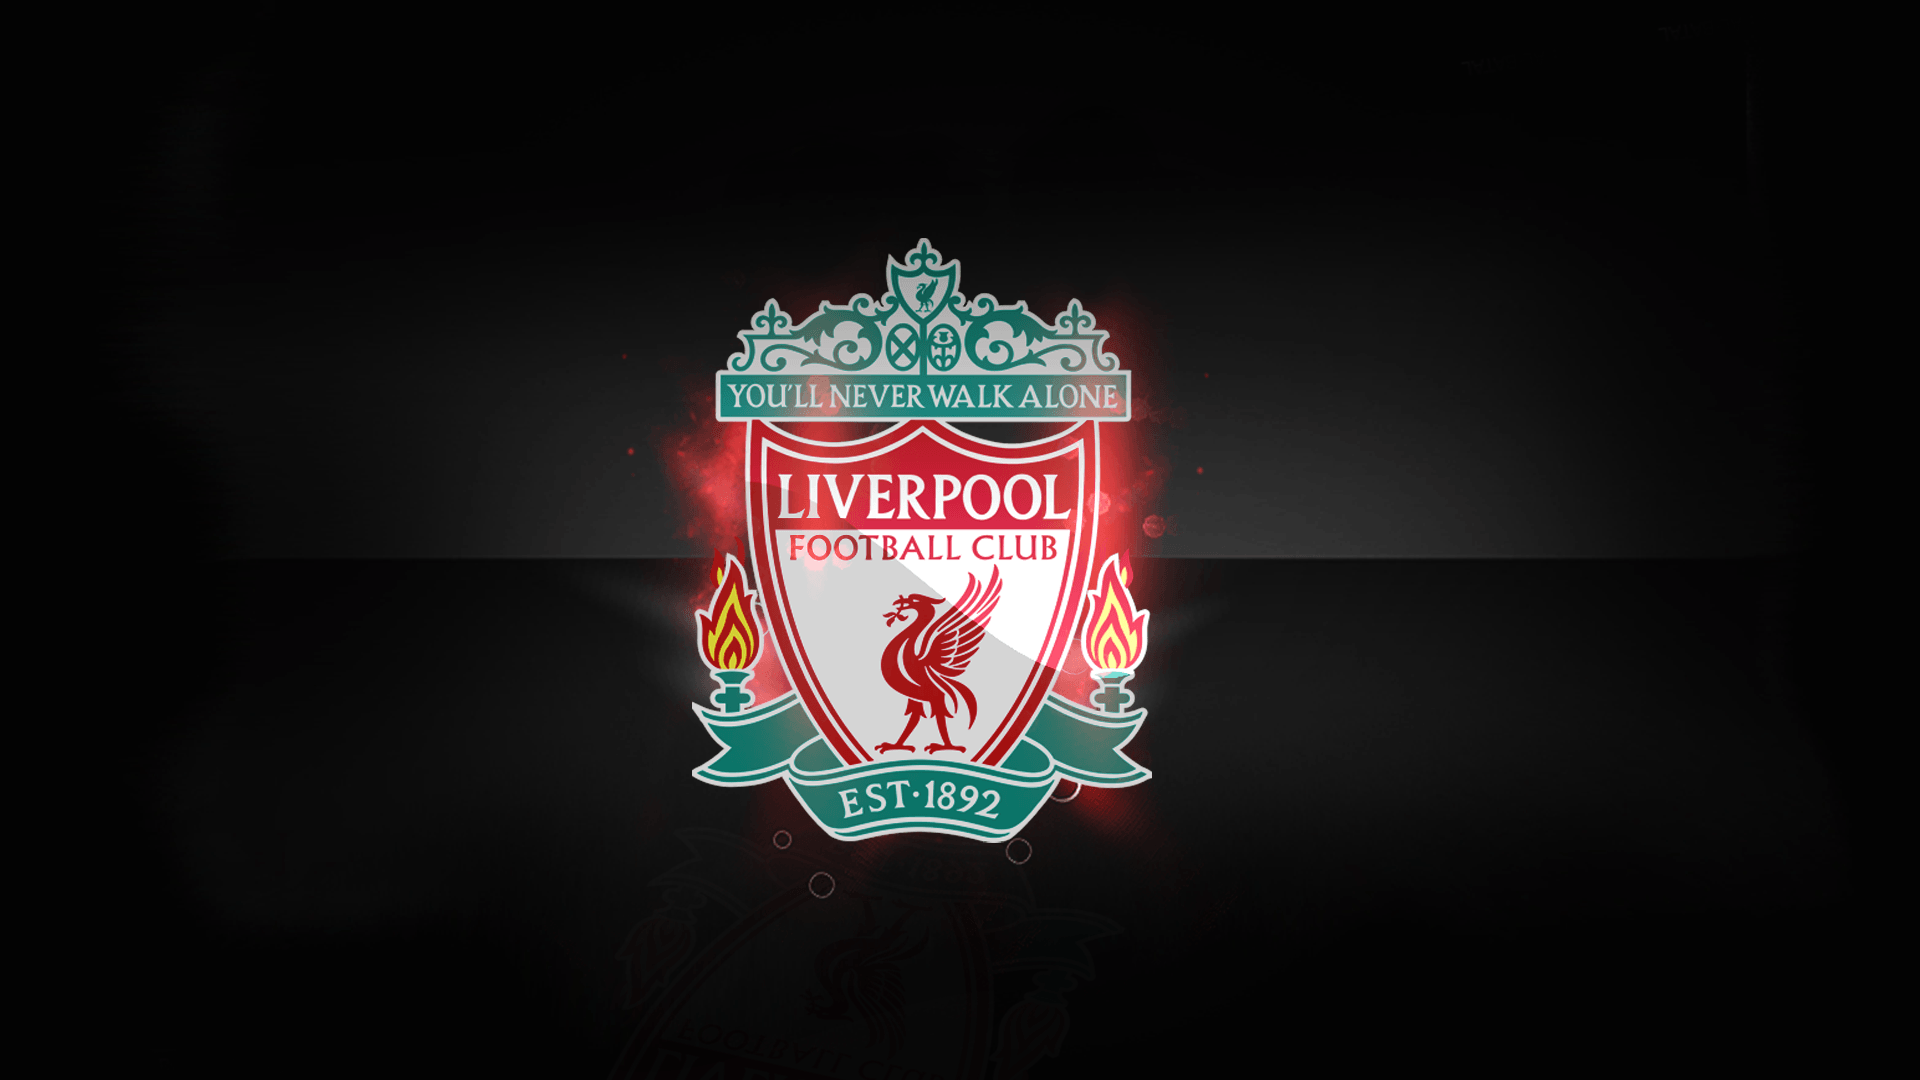 FC Liverpool Wallpapers - Wallpaper Cave